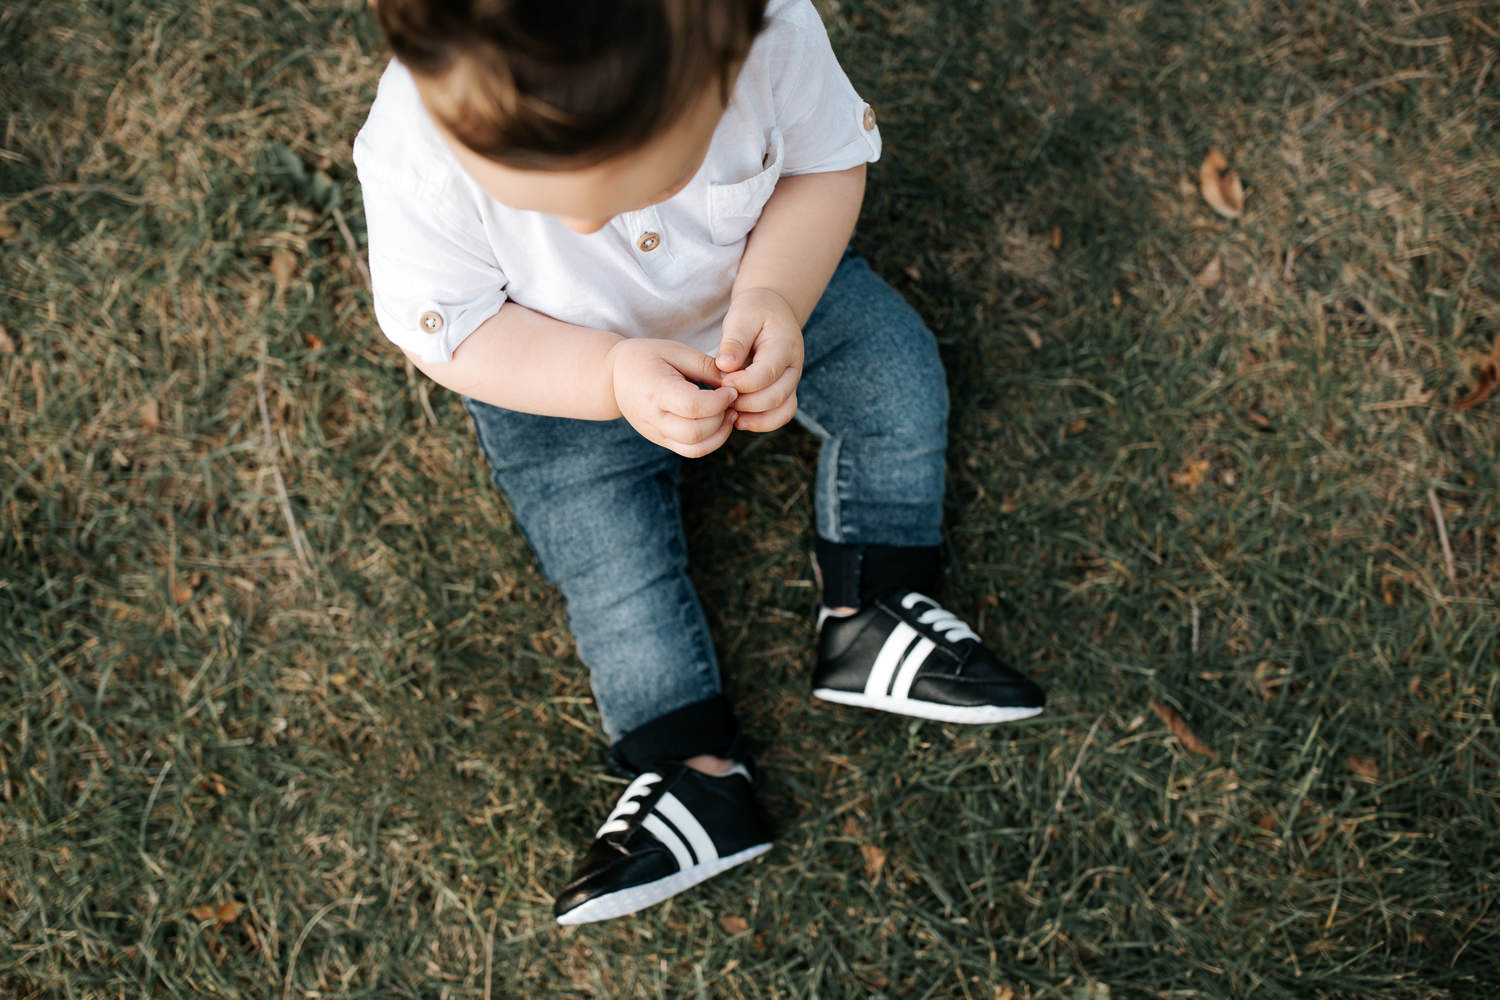 9 month old baby boy wearing white t-shirt, jeans and sneakers sitting on grass at park in front of greenery, close up of clasped hands and feet - GTA Golden Hour Photos